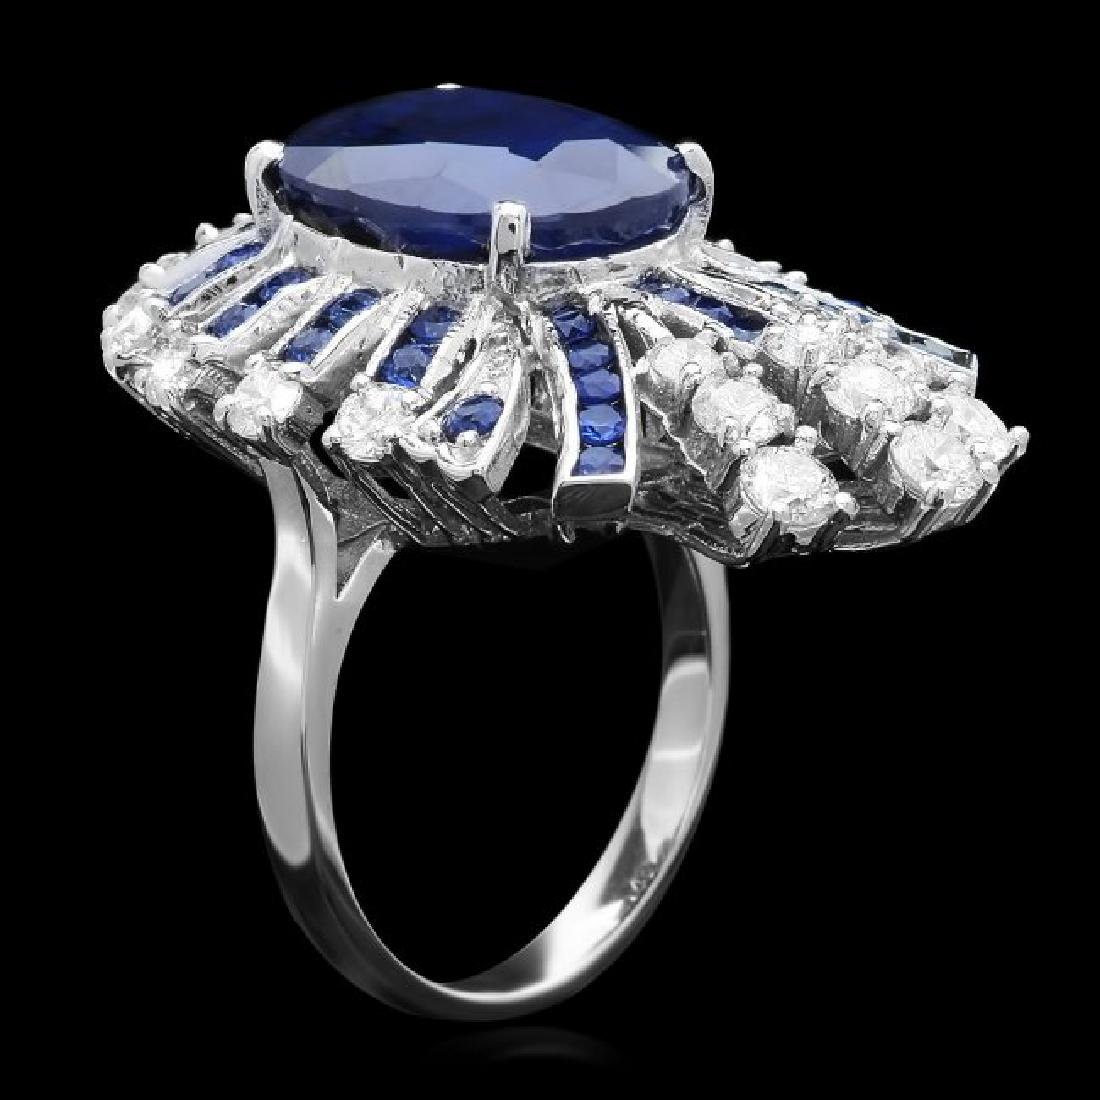 14k White Gold 11ct Sapphire 1.70ct Diamond Ring - 2